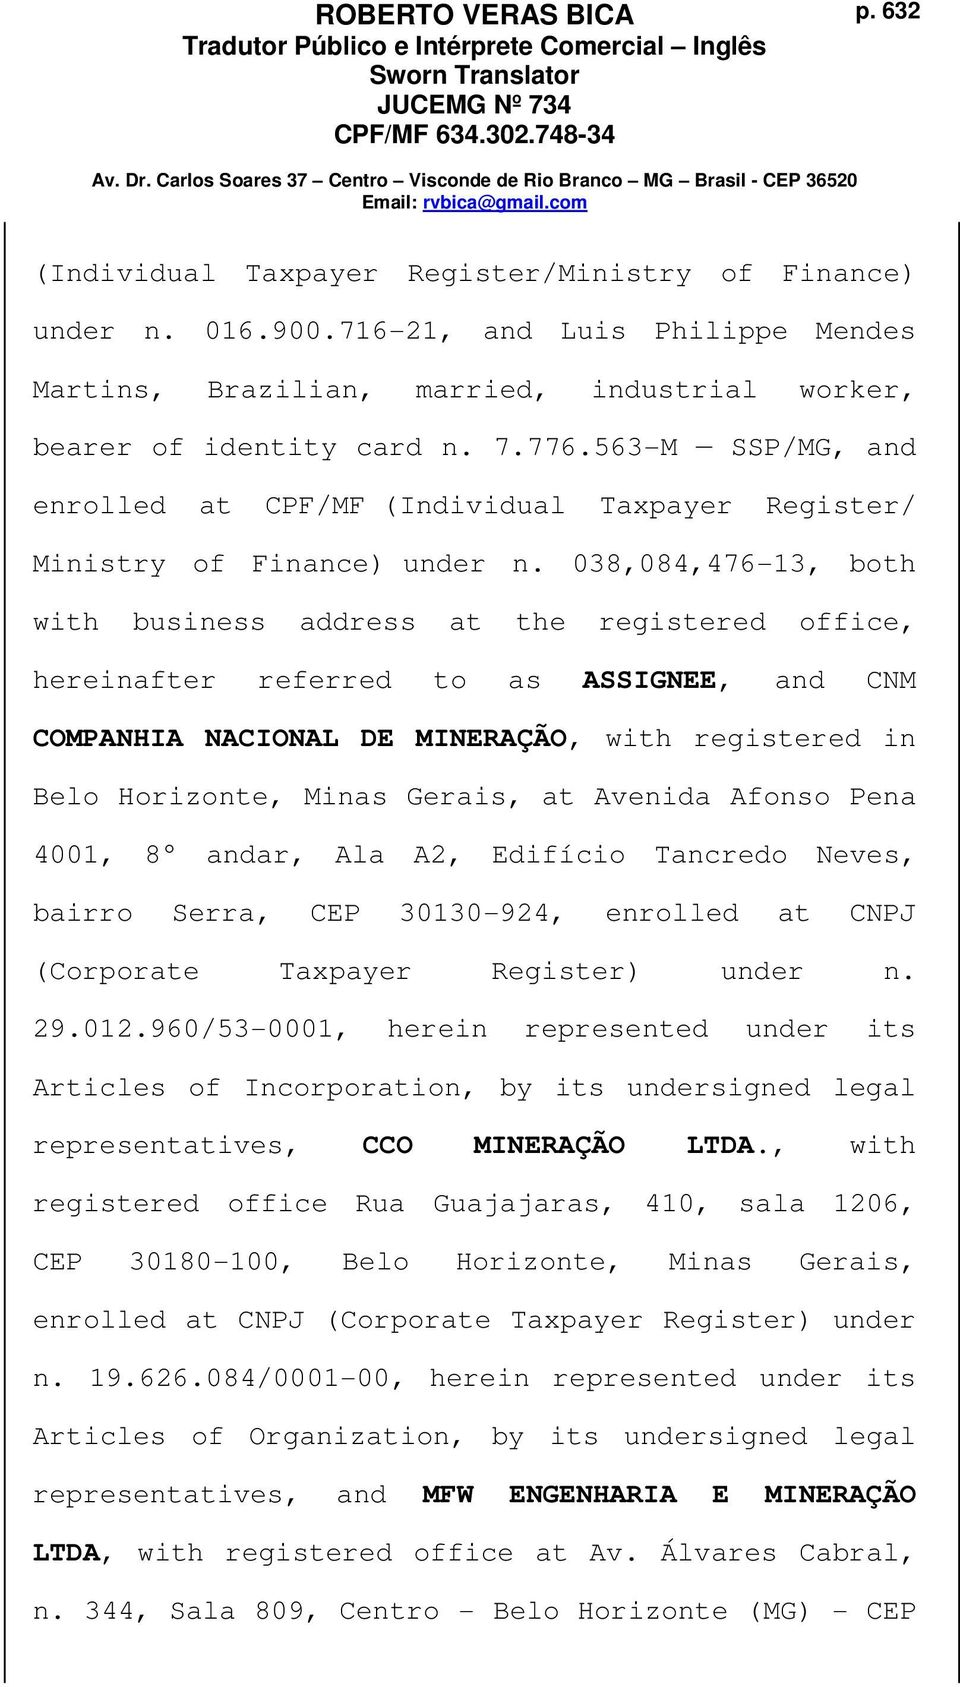 038,084,476-13, both with business address at the registered office, hereinafter referred to as ASSIGNEE, and CNM COMPANHIA NACIONAL DE MINERAÇÃO, with registered in Belo Horizonte, Minas Gerais, at